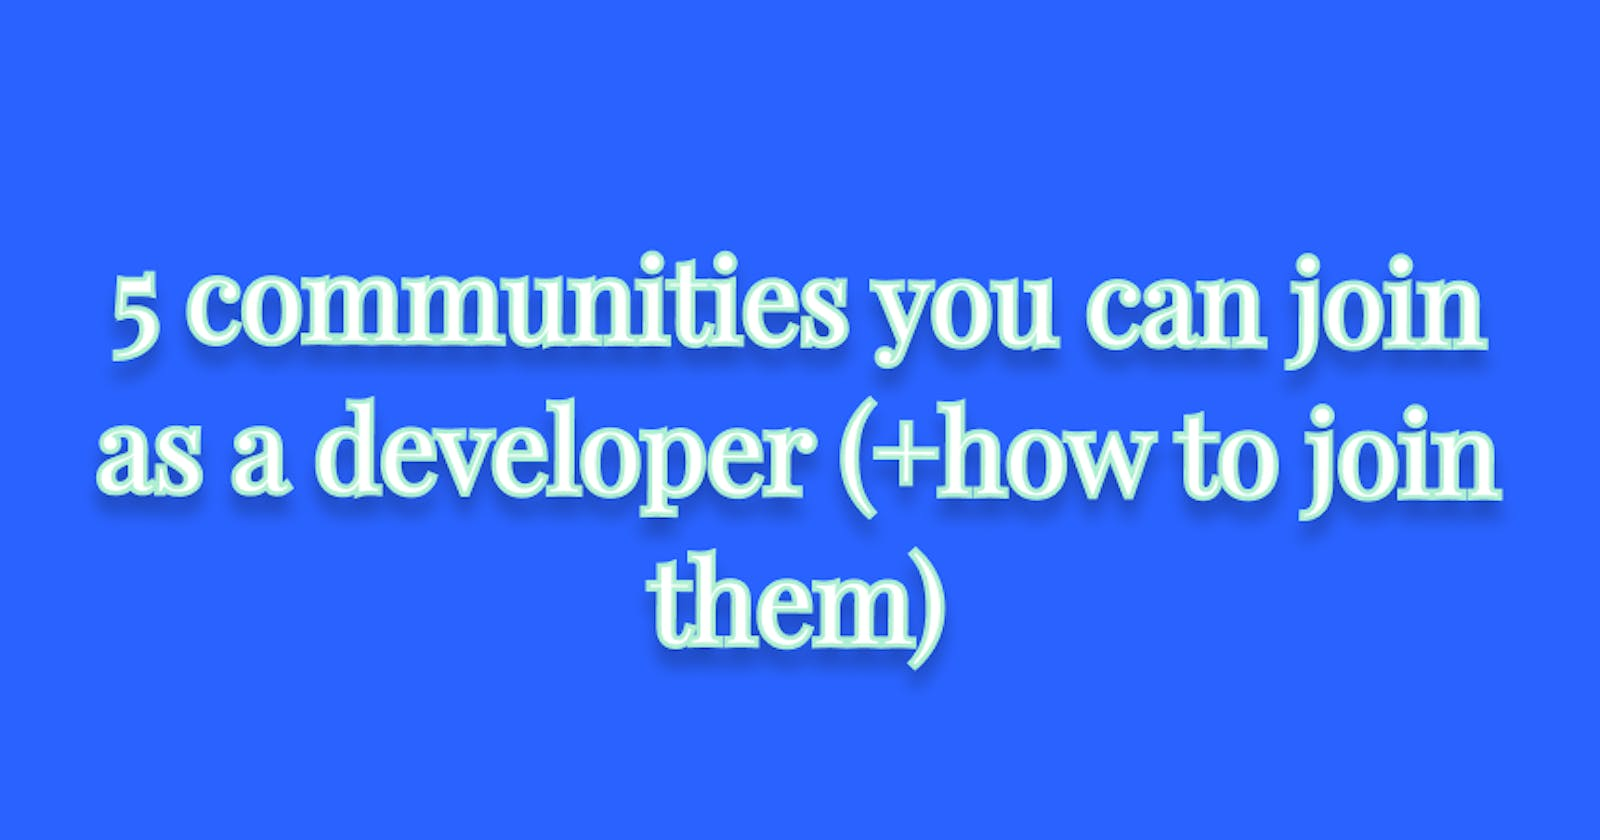 5 communities you can join as a developer (+how to join them)